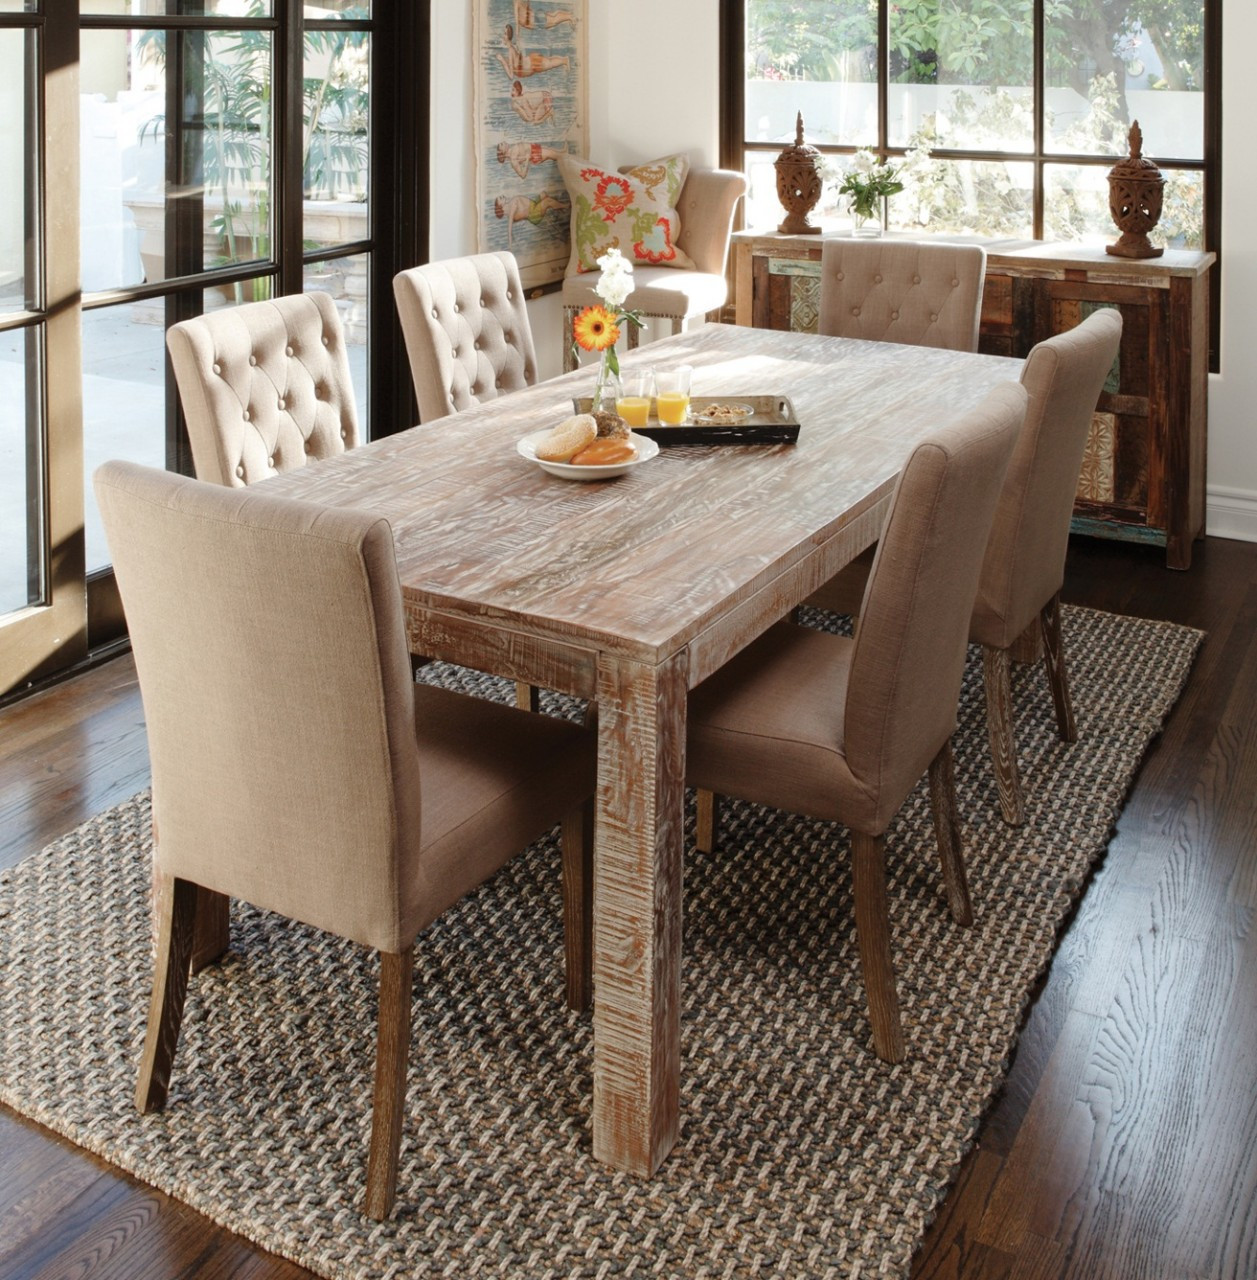 https://cdn7.bigcommerce.com/s-42eba/images/stencil/1280x1280/products/2131/6452/Reclaimed_Teak_60_inch_dining_table__55874.1349562880.jpg?c=2&imbypass=on